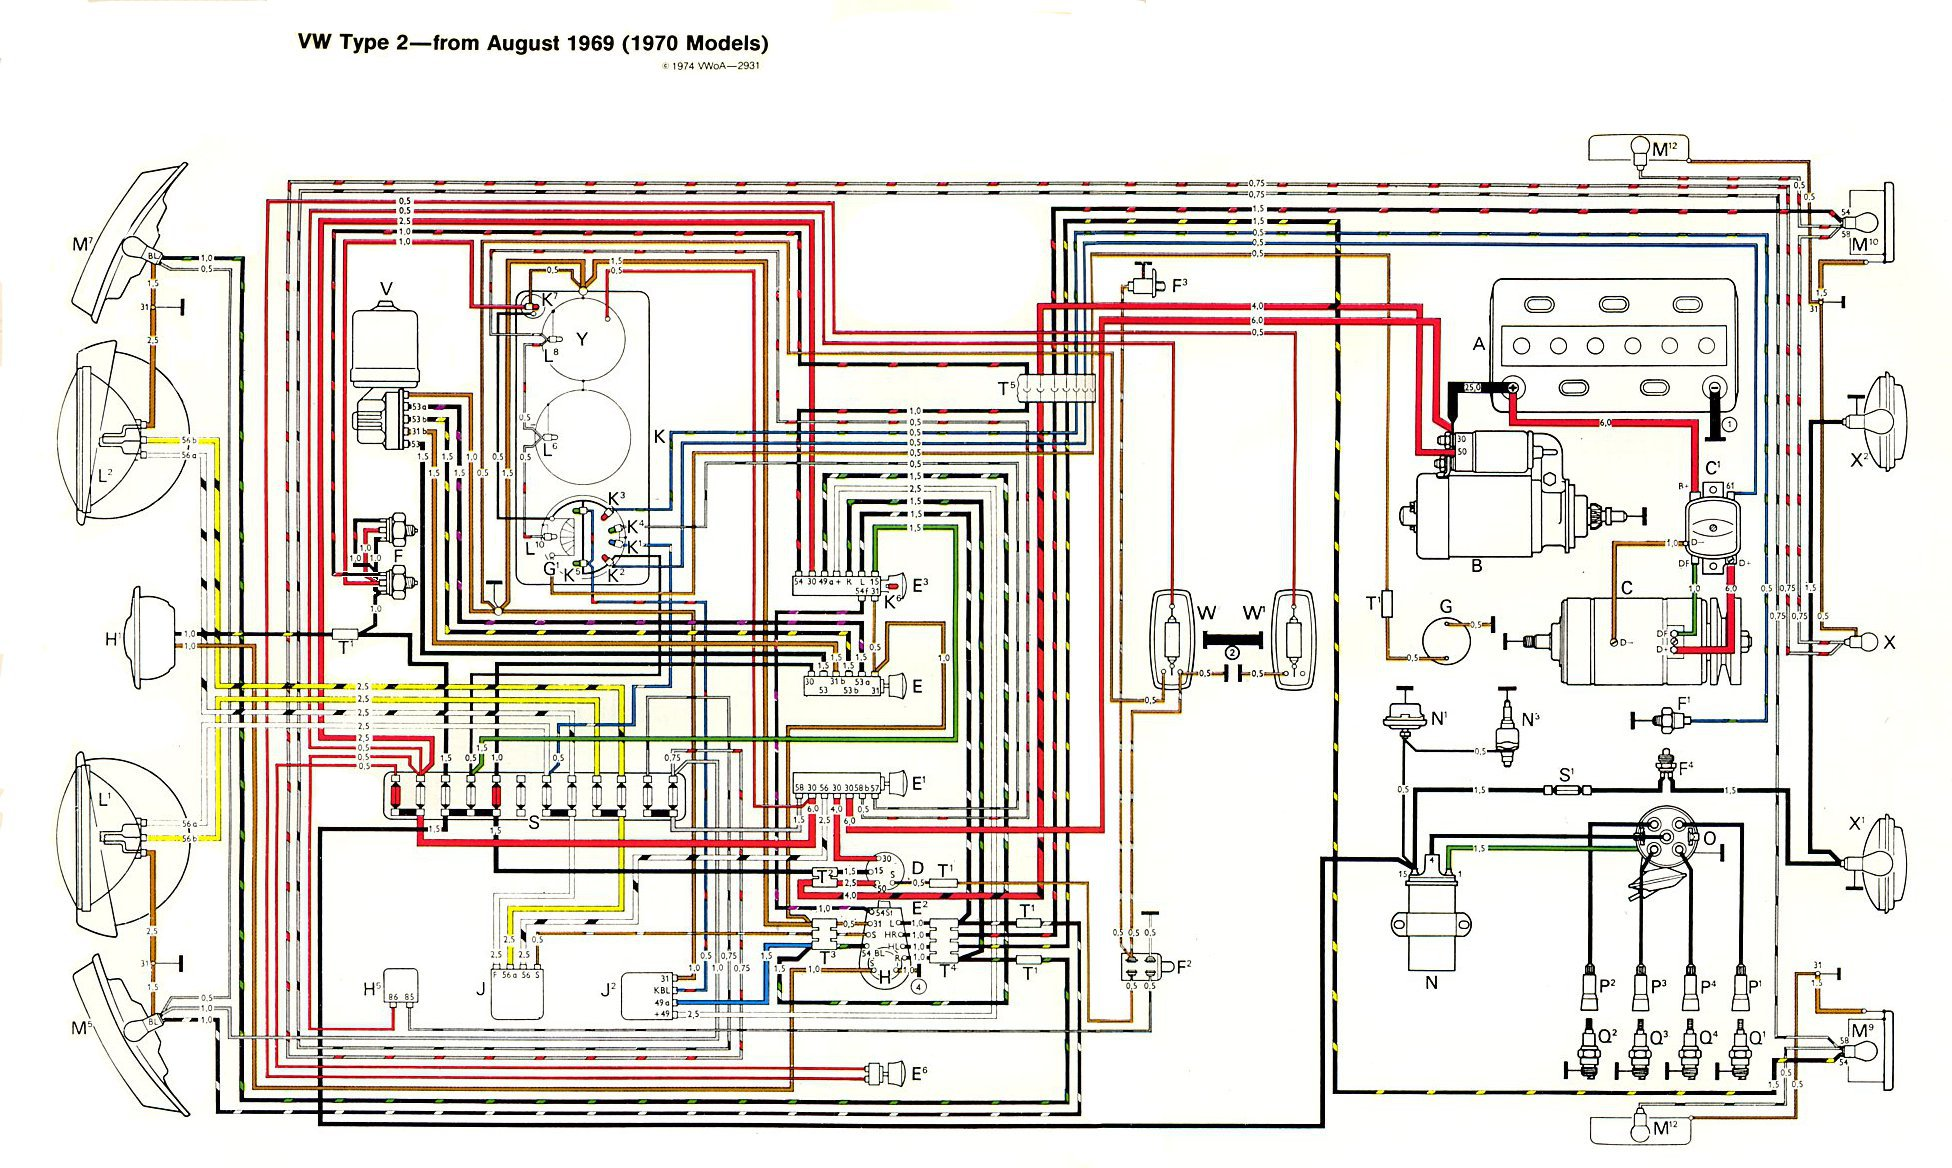 baybus_70 thesamba com type 2 wiring diagrams 1971 vw bus wiring diagram at n-0.co